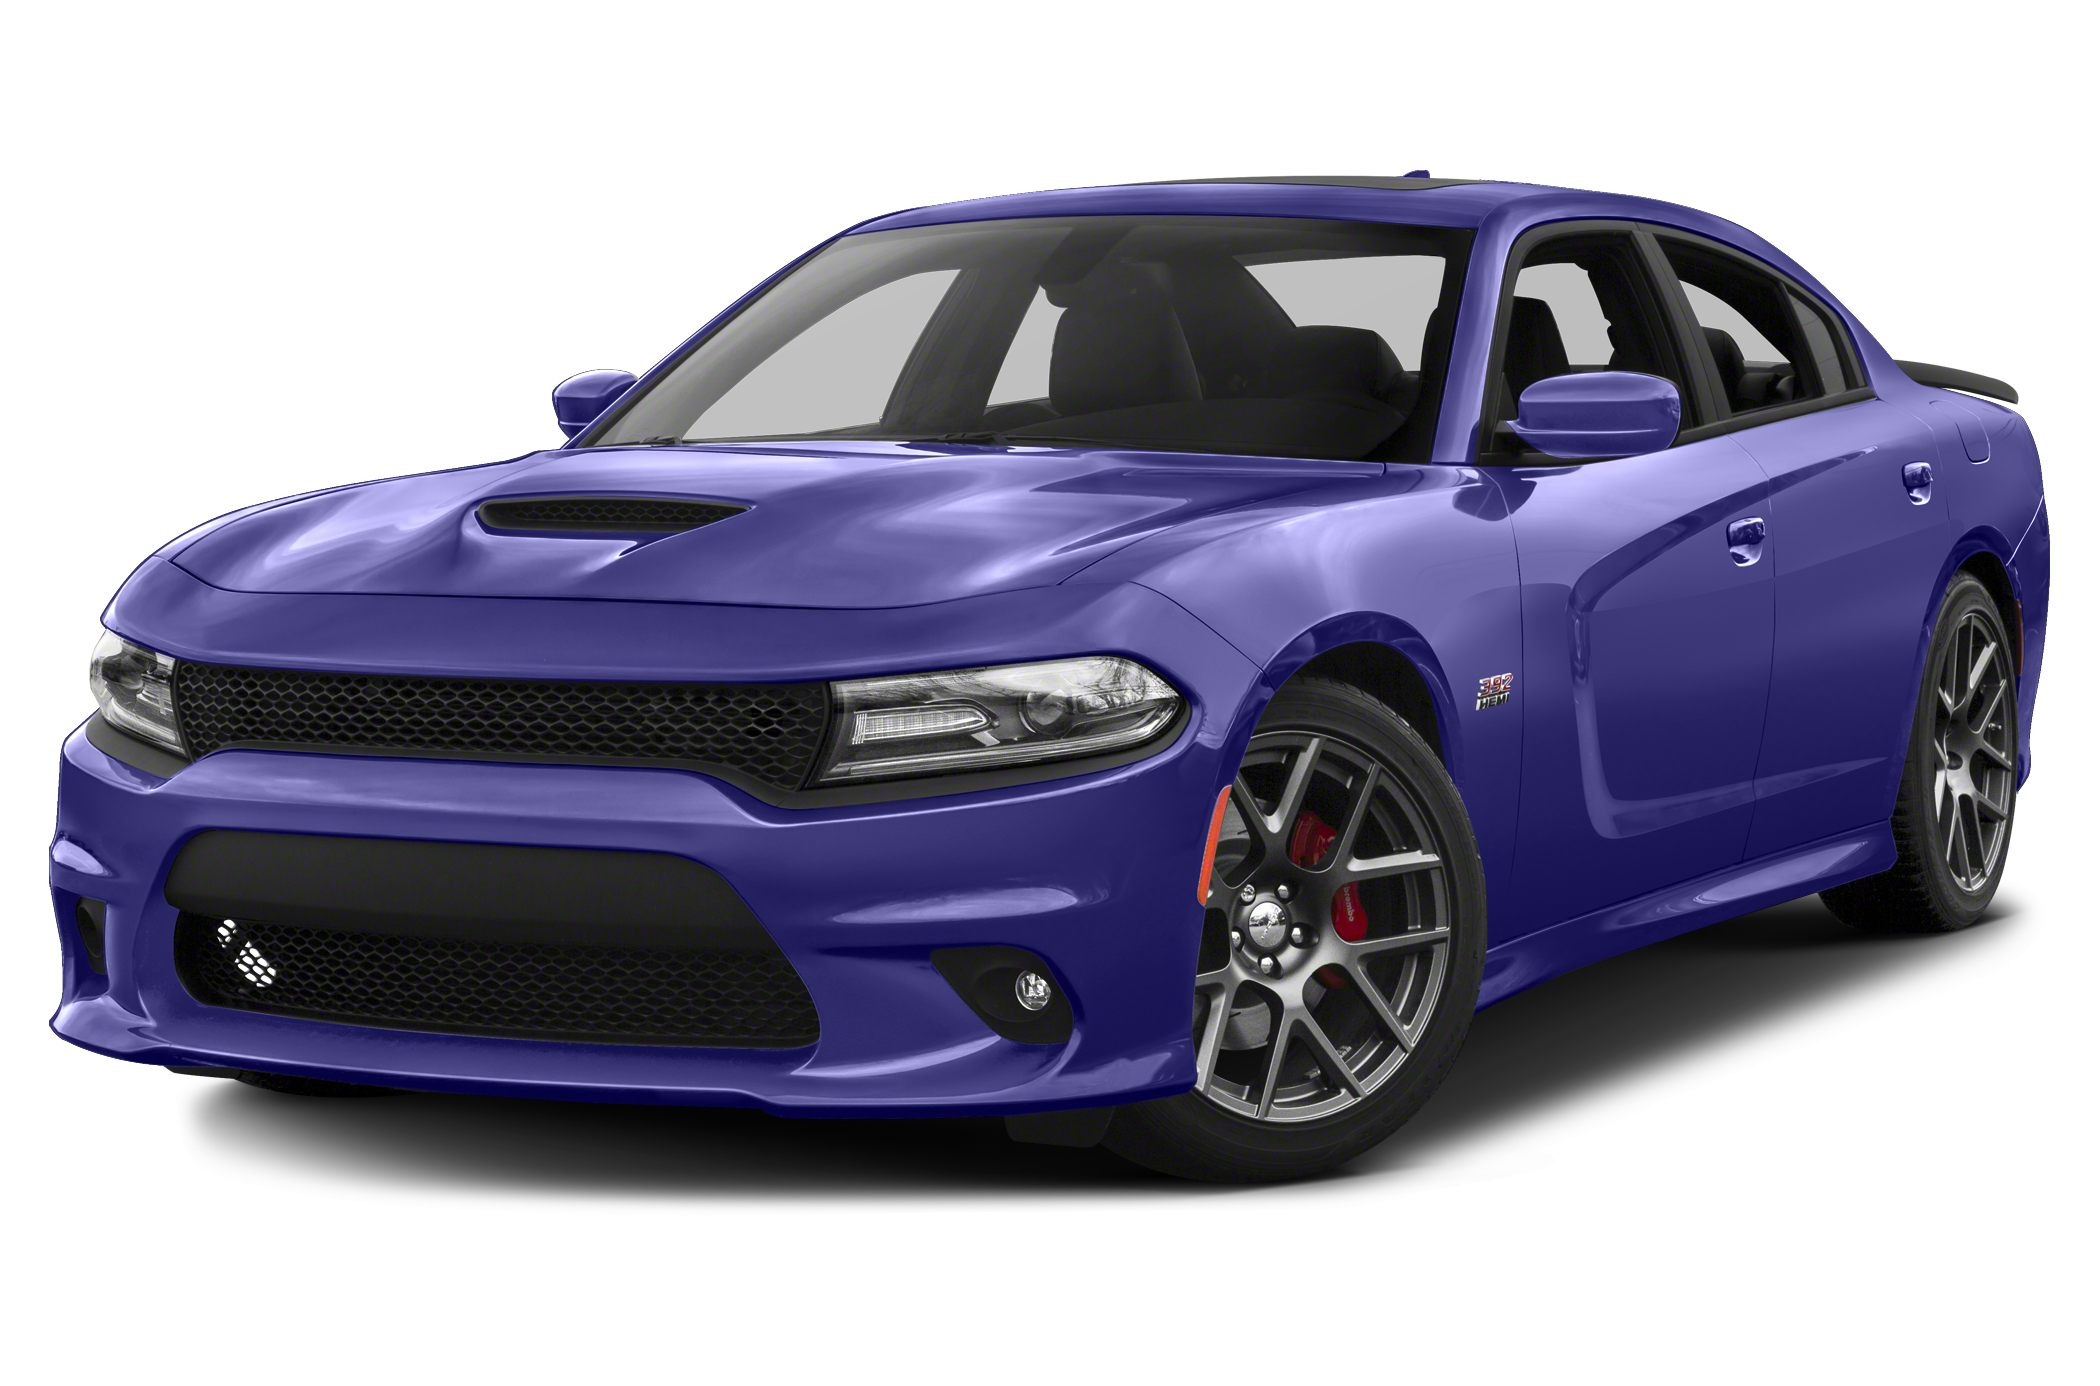 2017 Dodge Charger Scat Pack Specs 2016 Dodge Charger R T Scat Pack 4dr Rear Wheel Drive